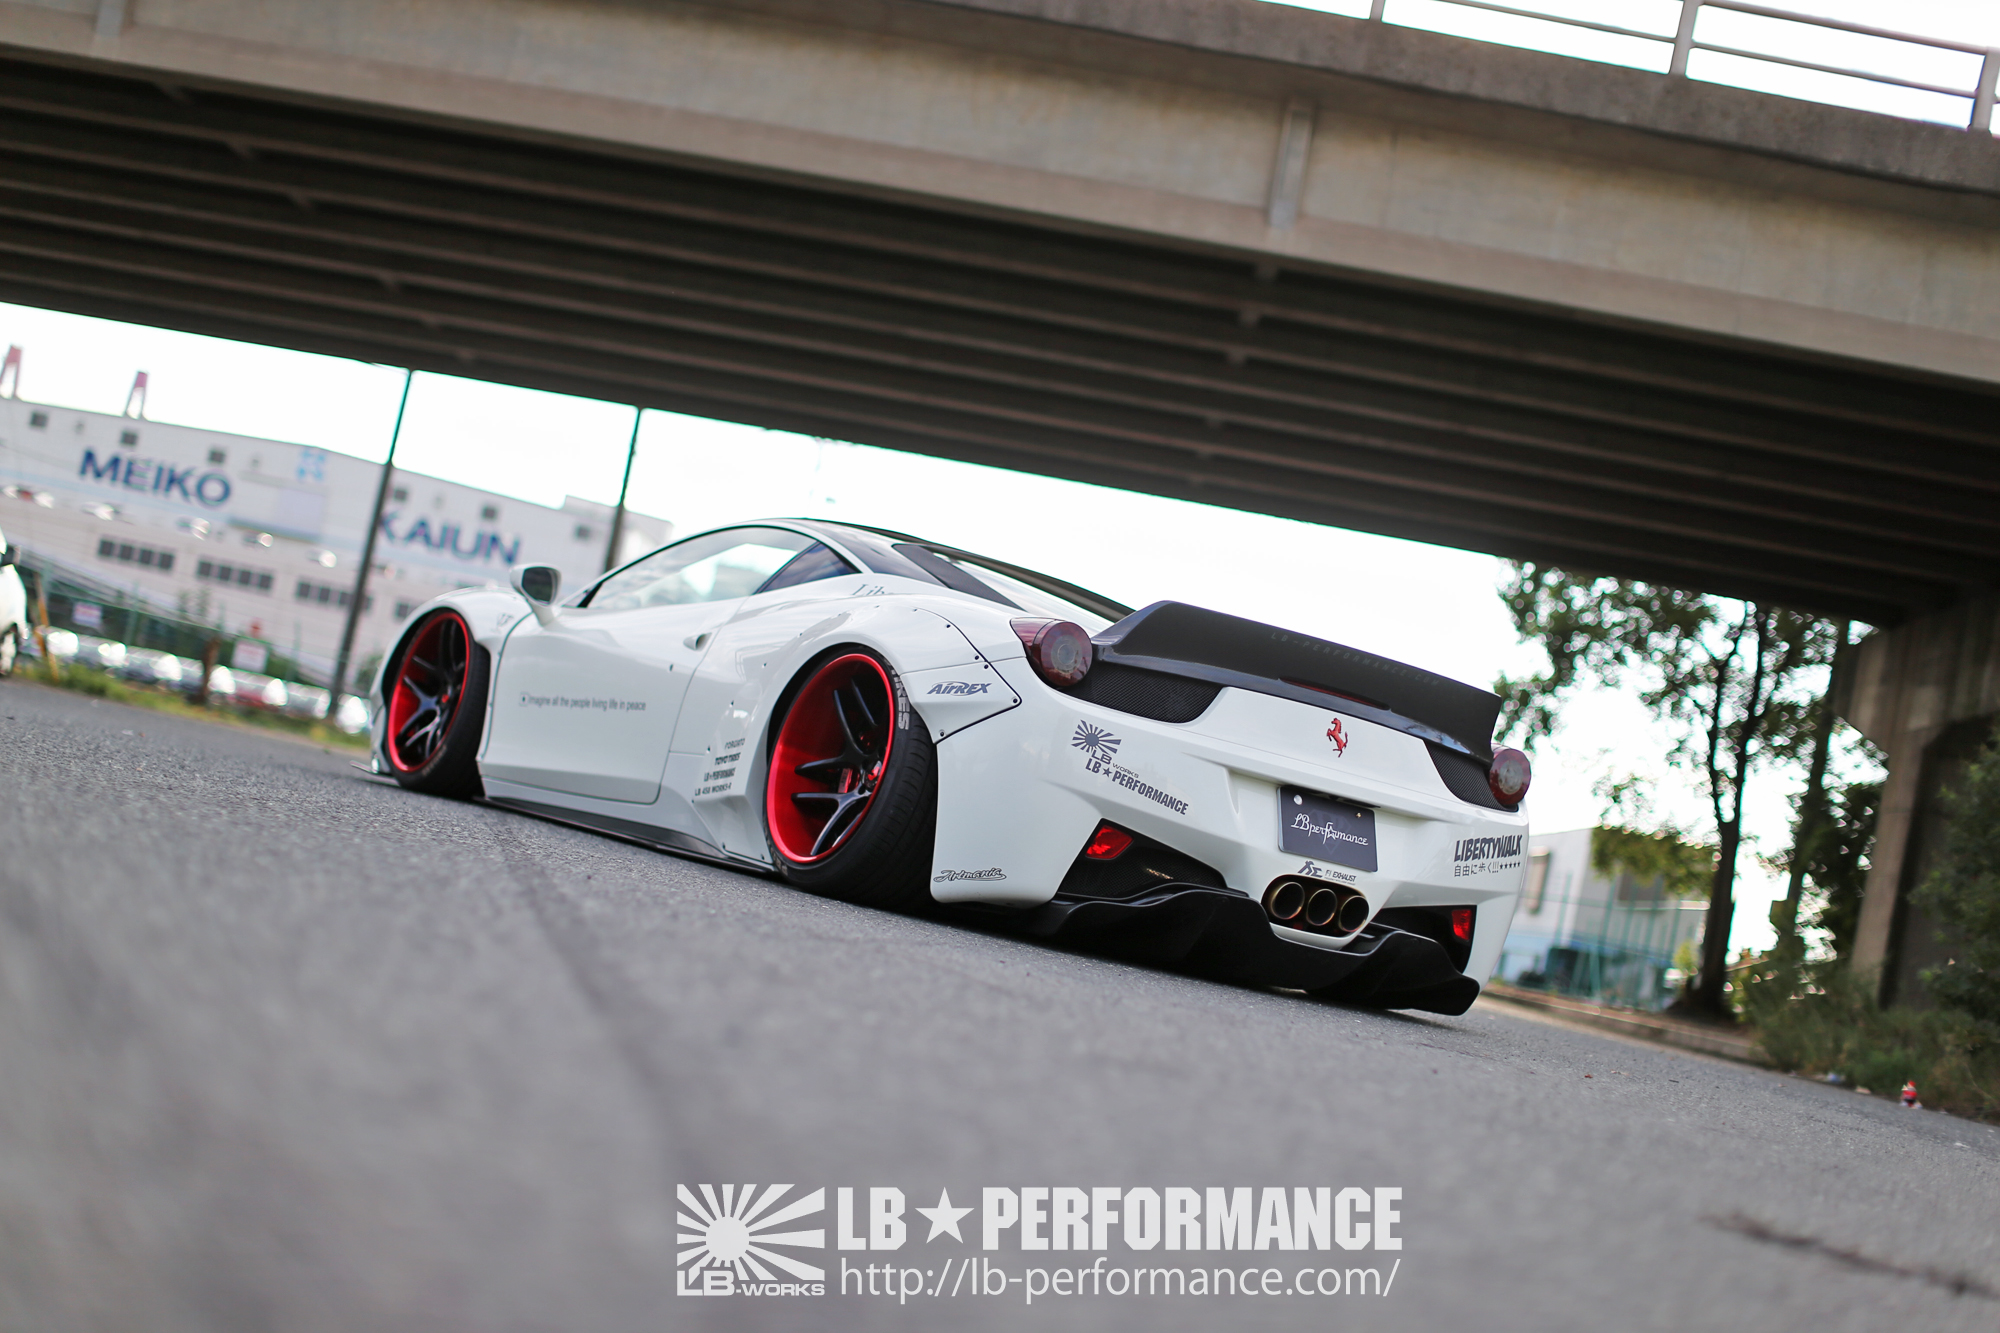 IMG_0957-1 LB-WORKS 458